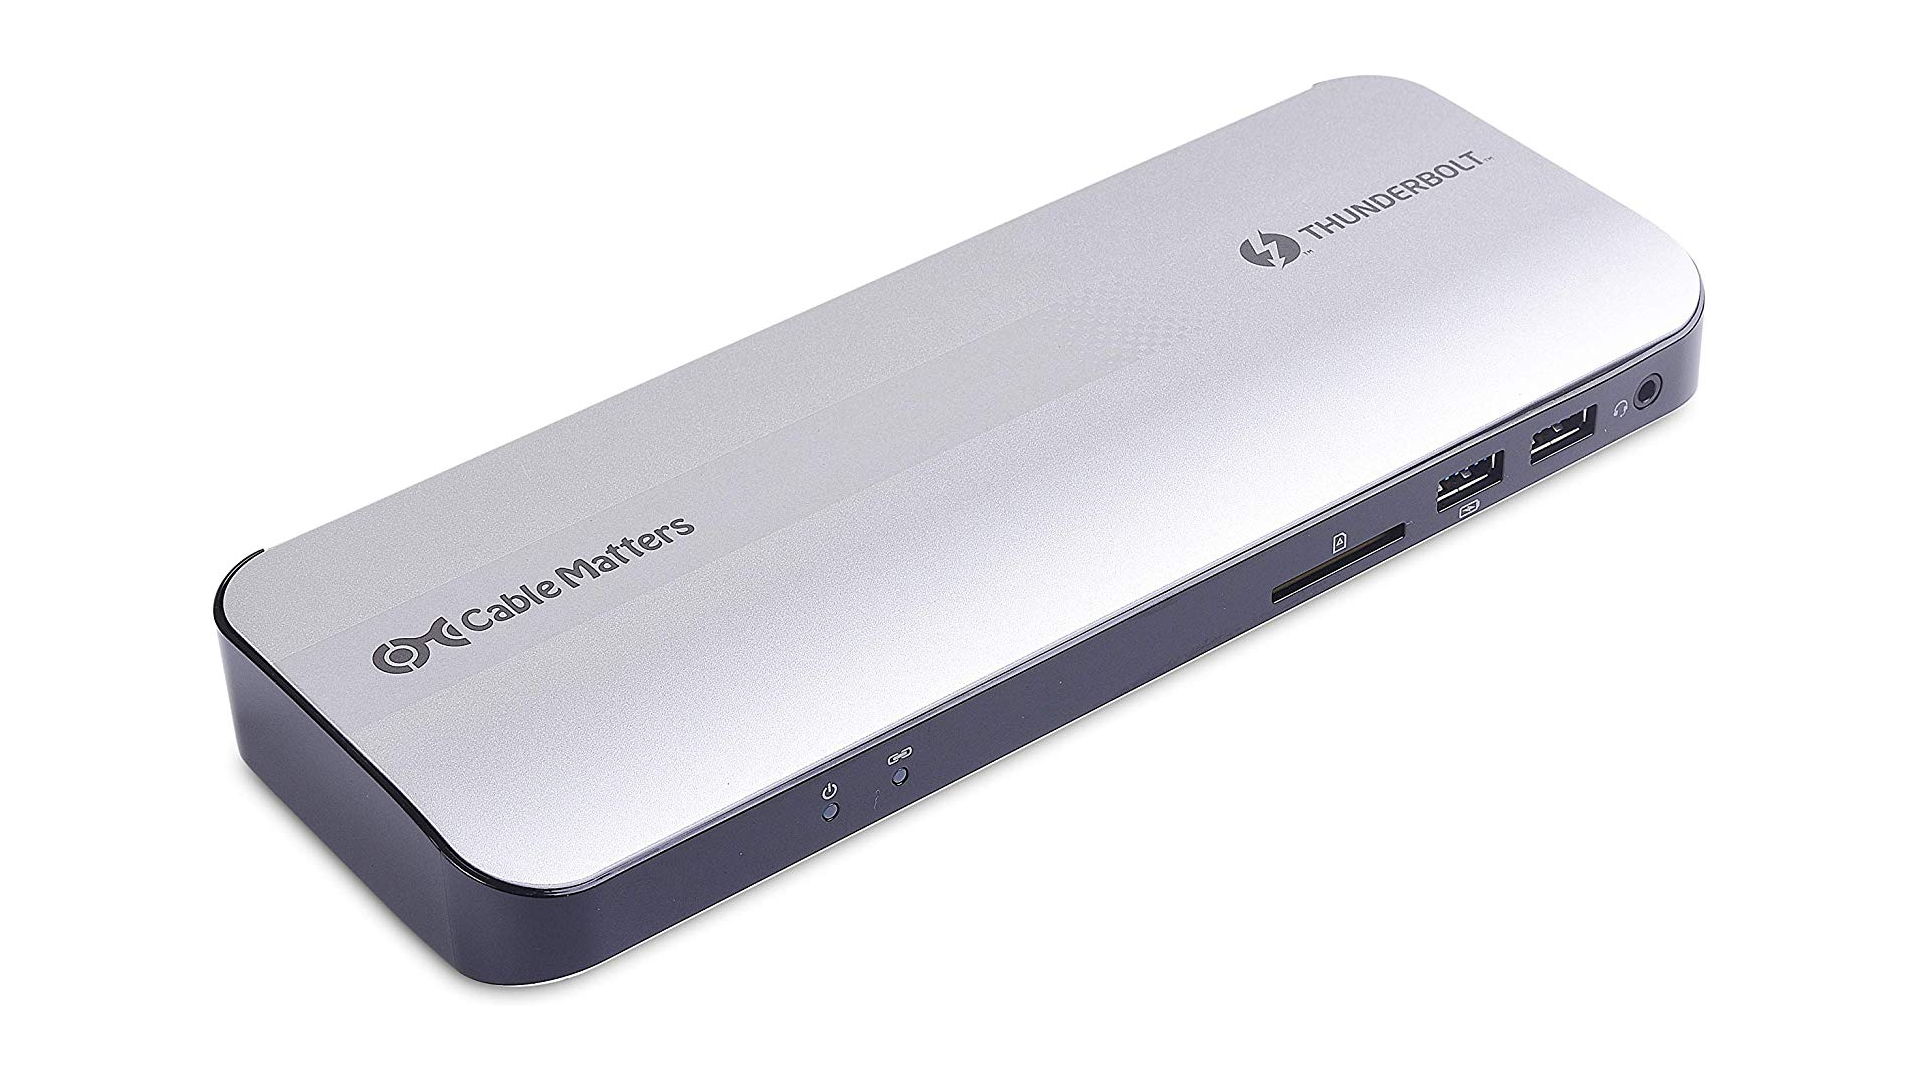 The Cable Matters thunderbolt 3 docking station